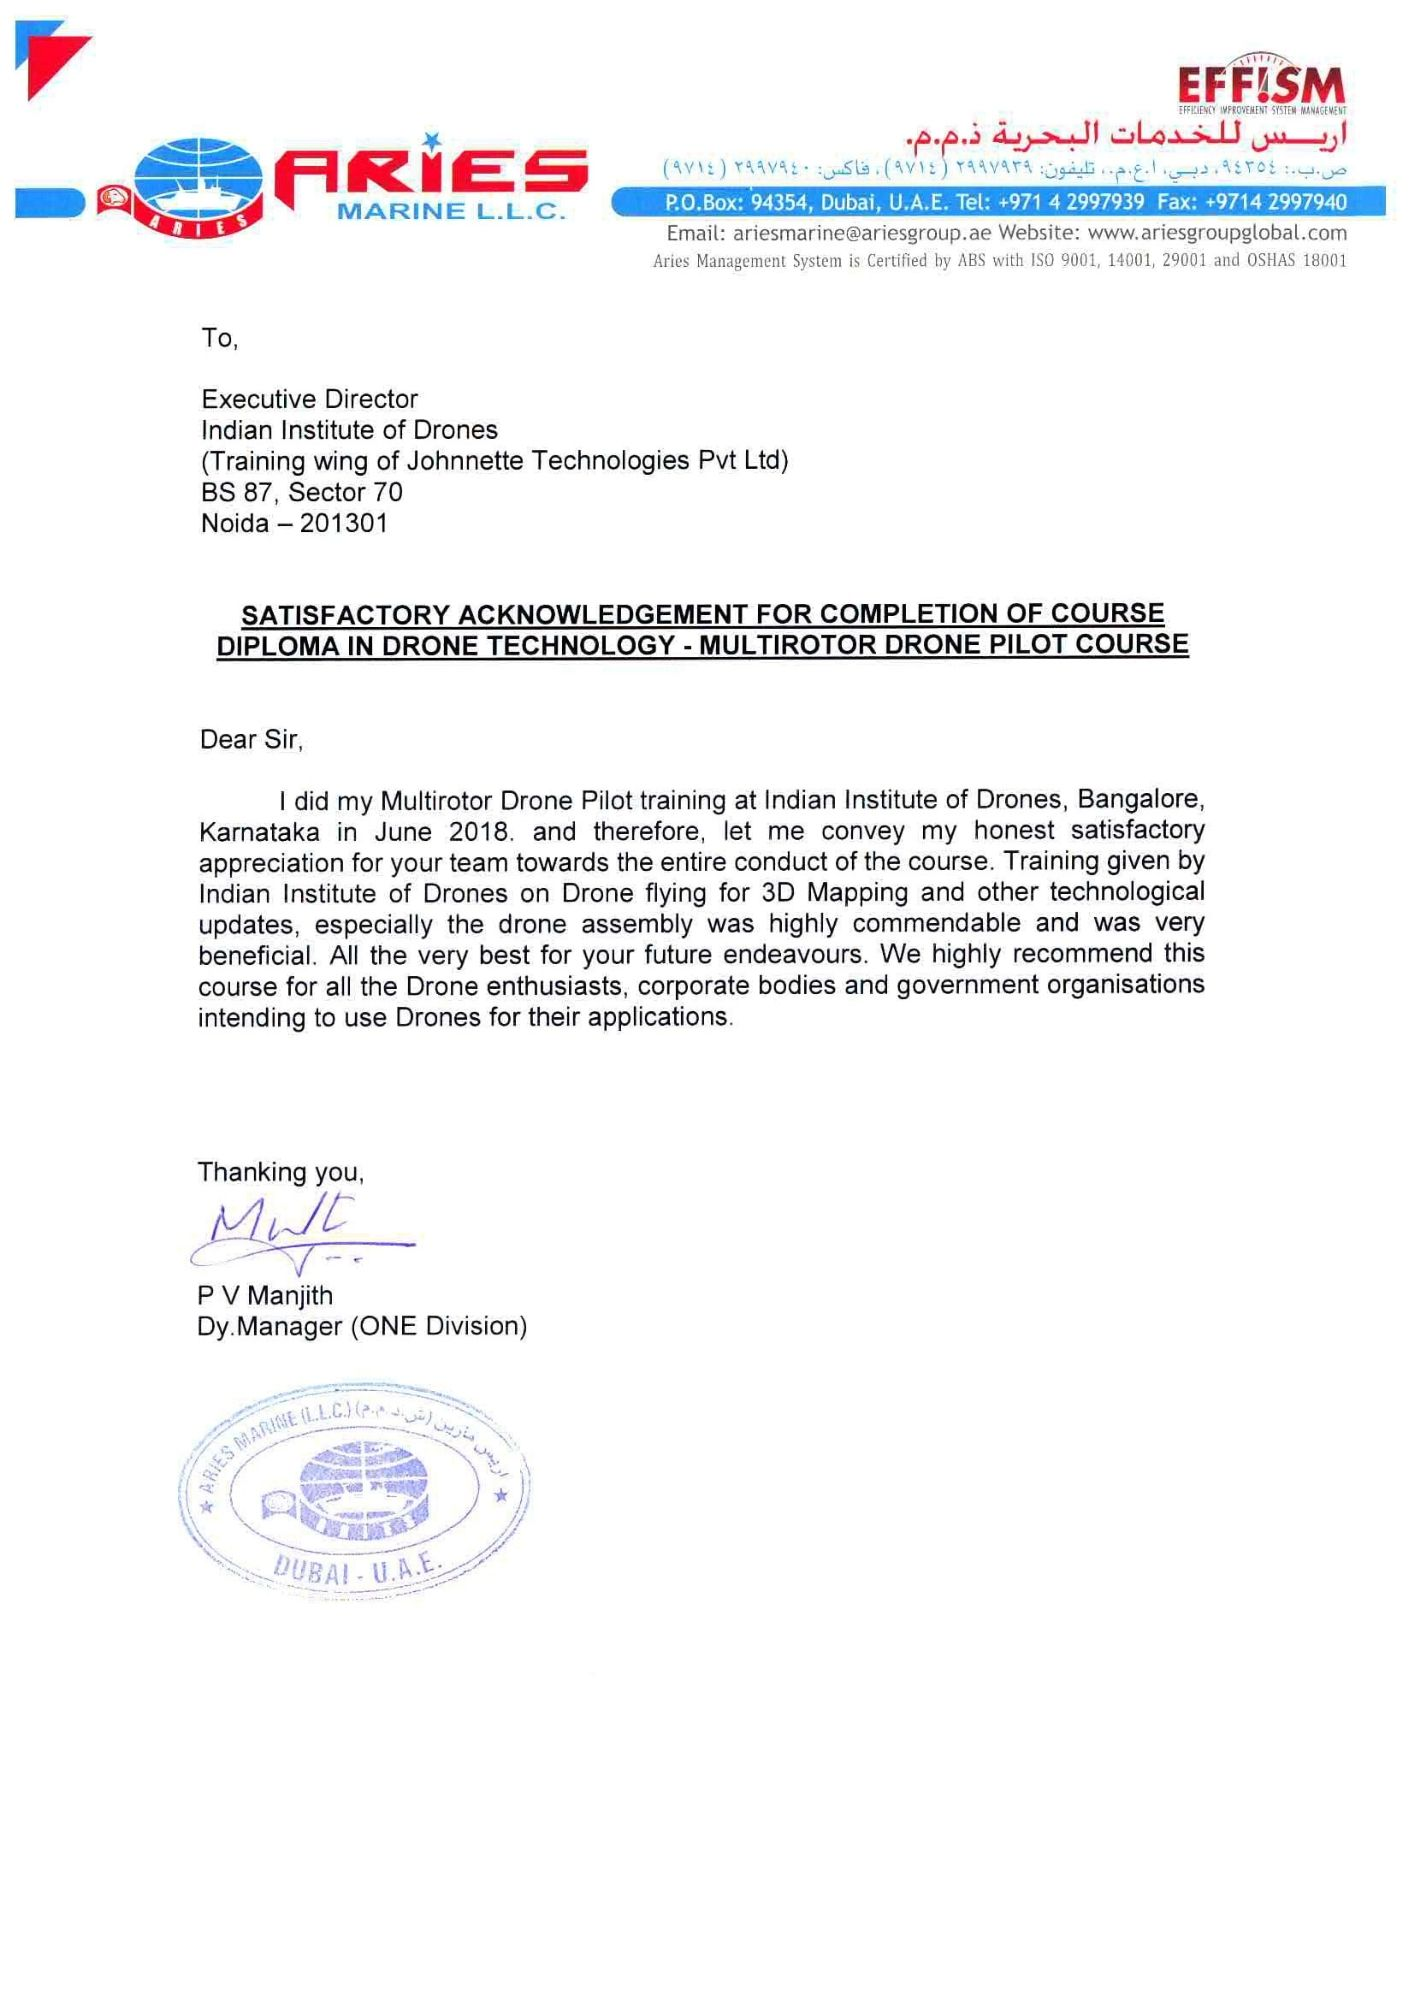 Satisfactory Letter for Drone Training Received from Aeries Marine, U.A.E